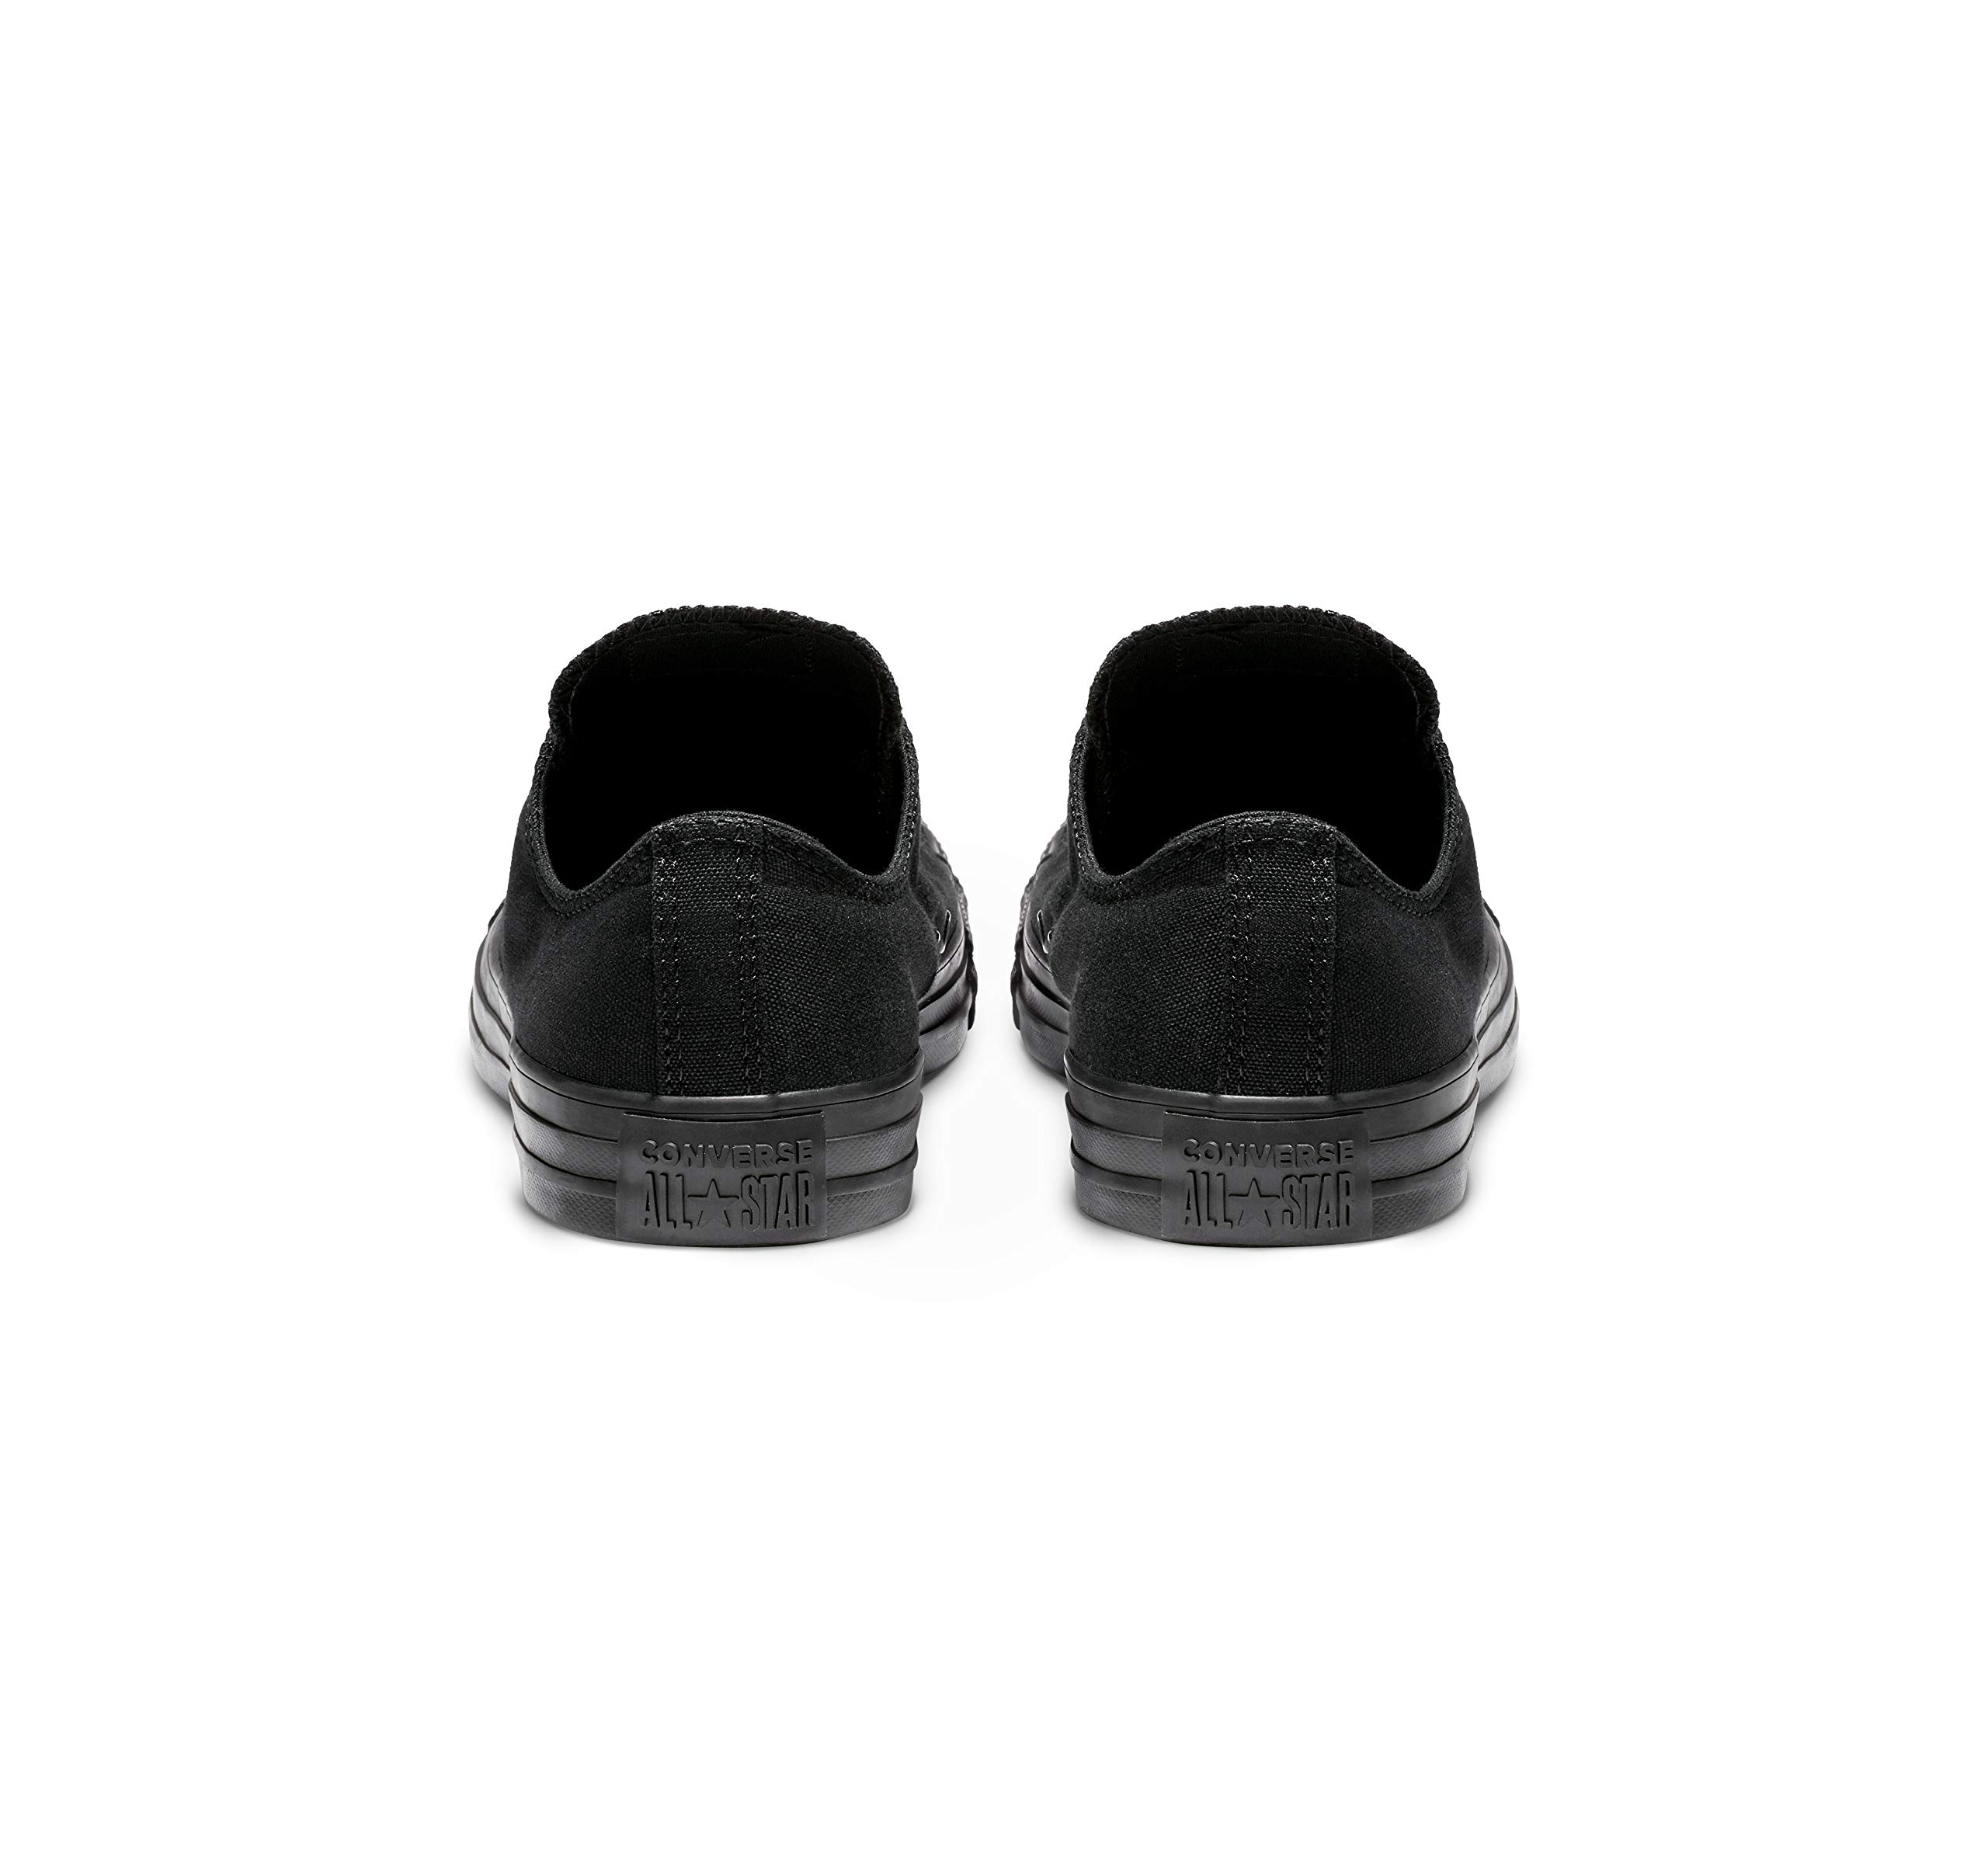 Converse Unisex Chuck Taylor All Star Low Top Black Monochrome Sneakers - 9 D(M) US by Converse (Image #3)